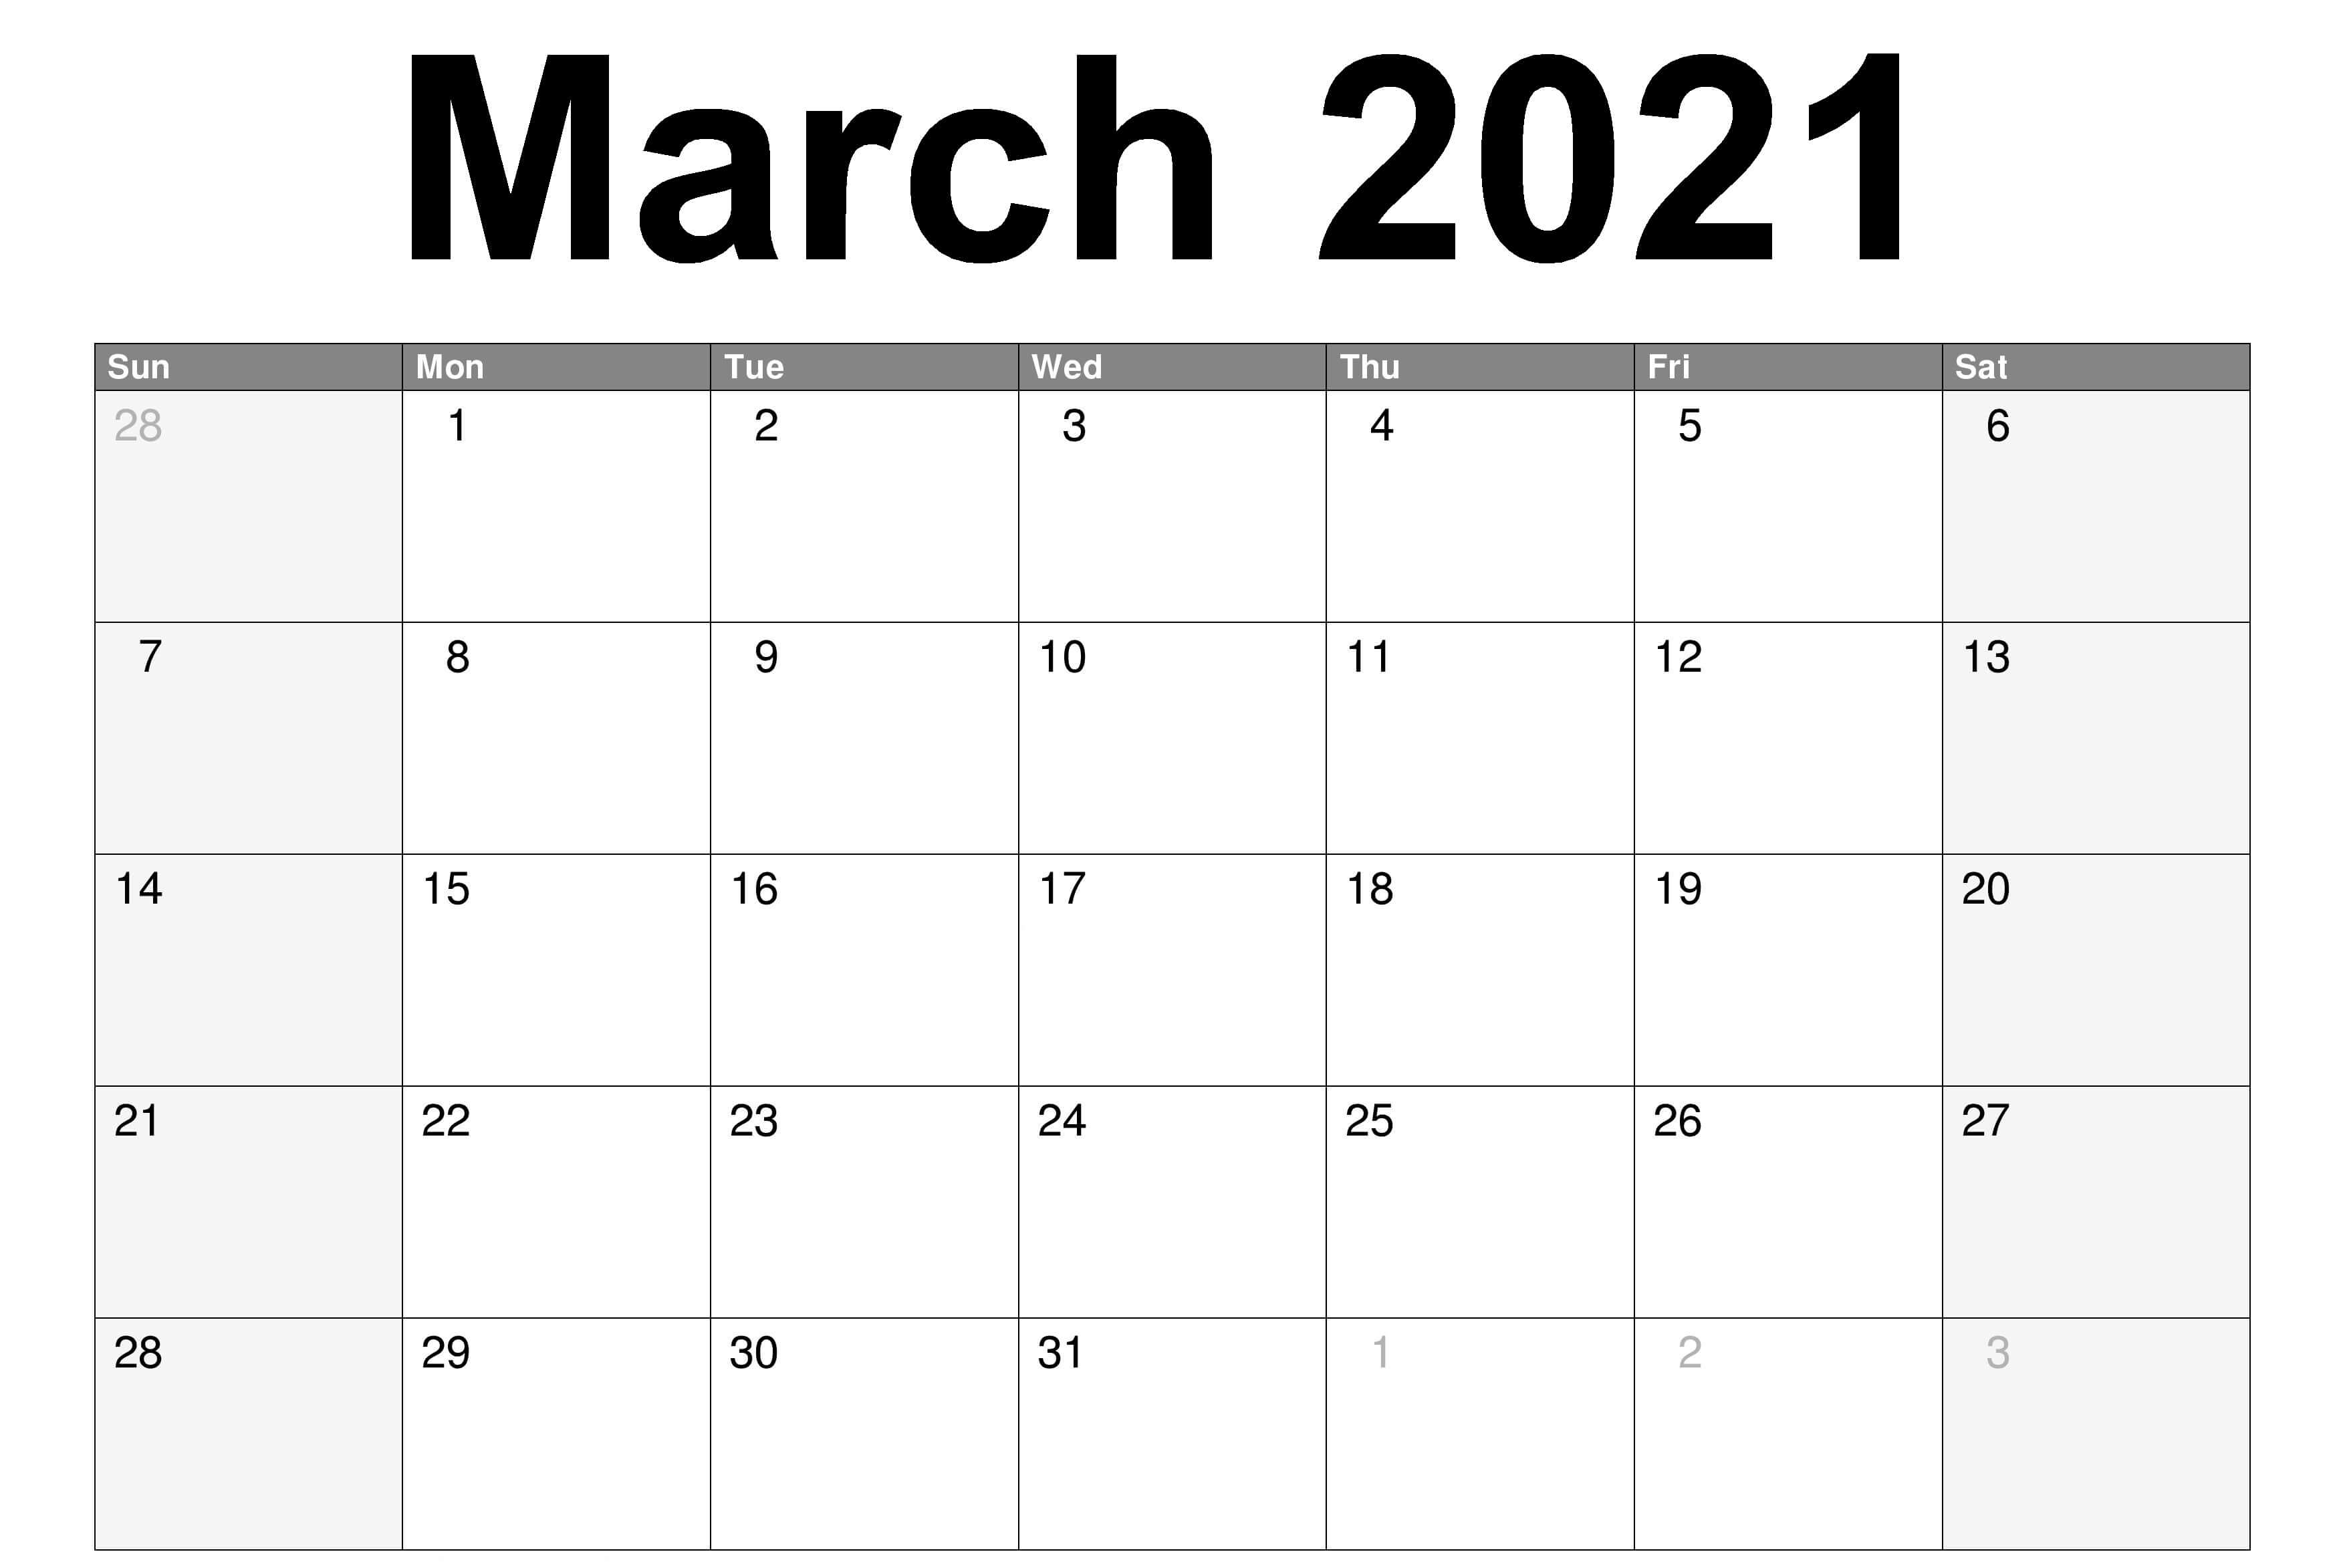 Monthly March 2021 Calendar - Blank Printable Template